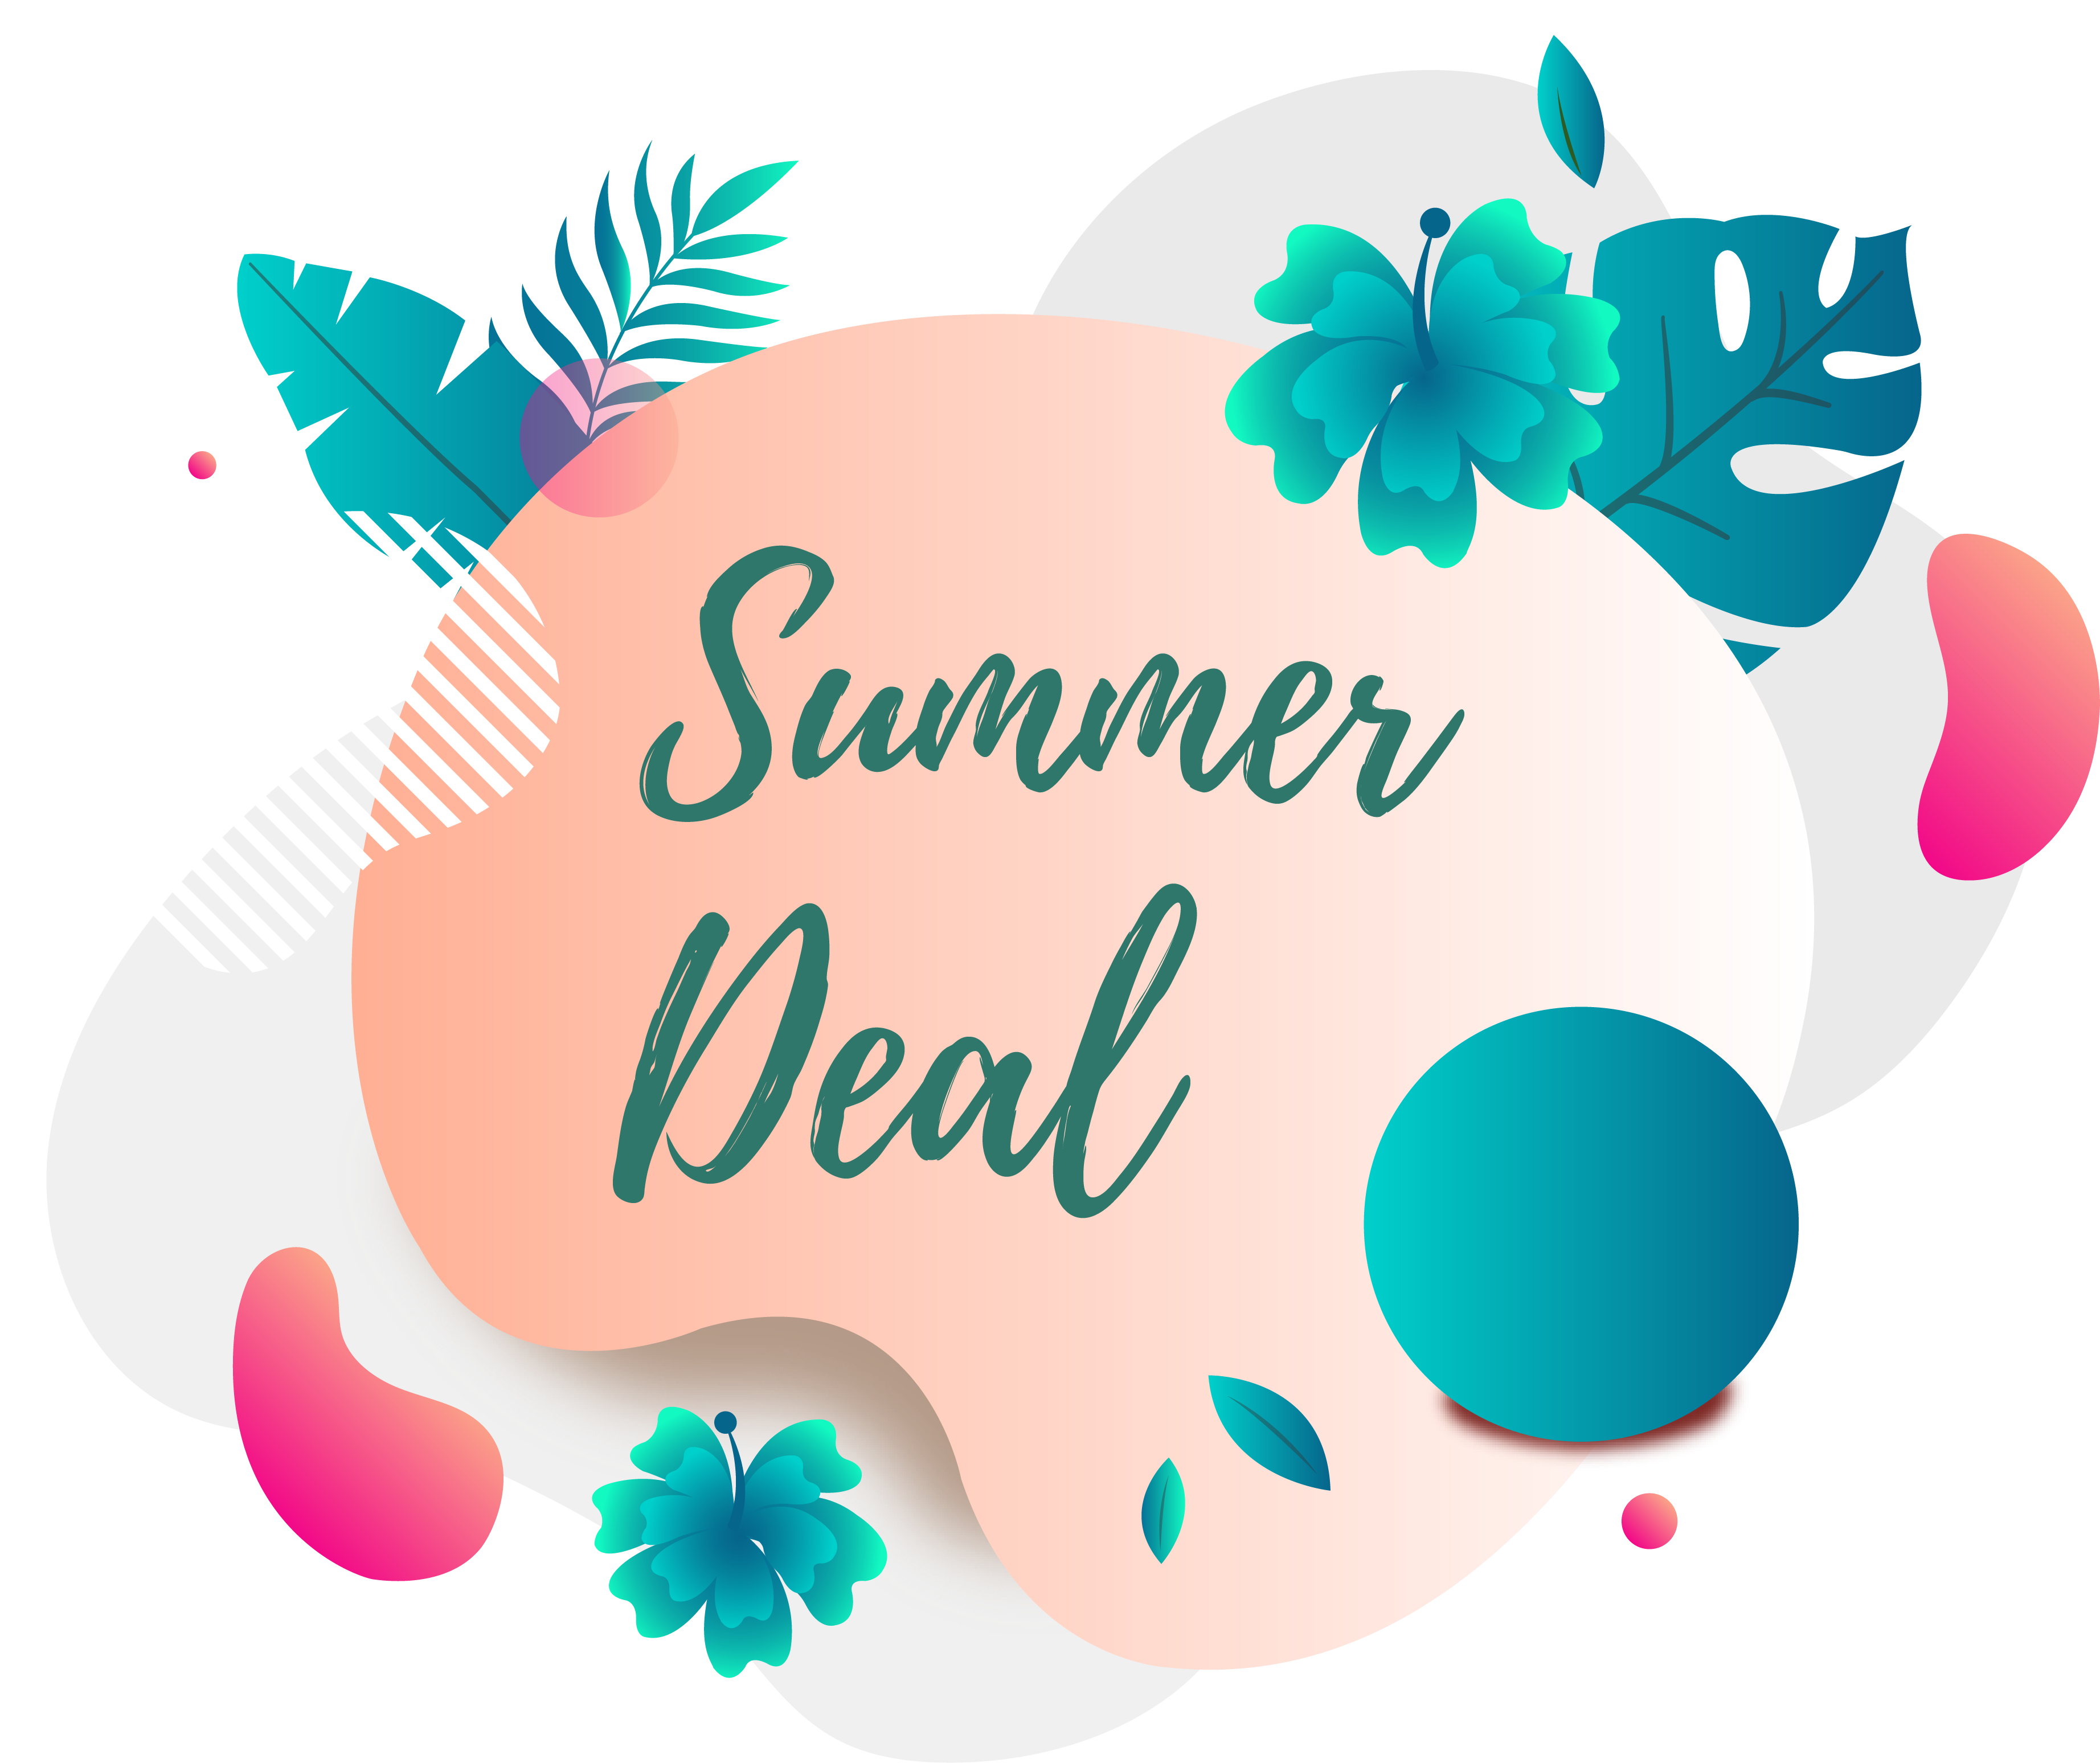 Summer Deal - Lenovo - Darest Informatic